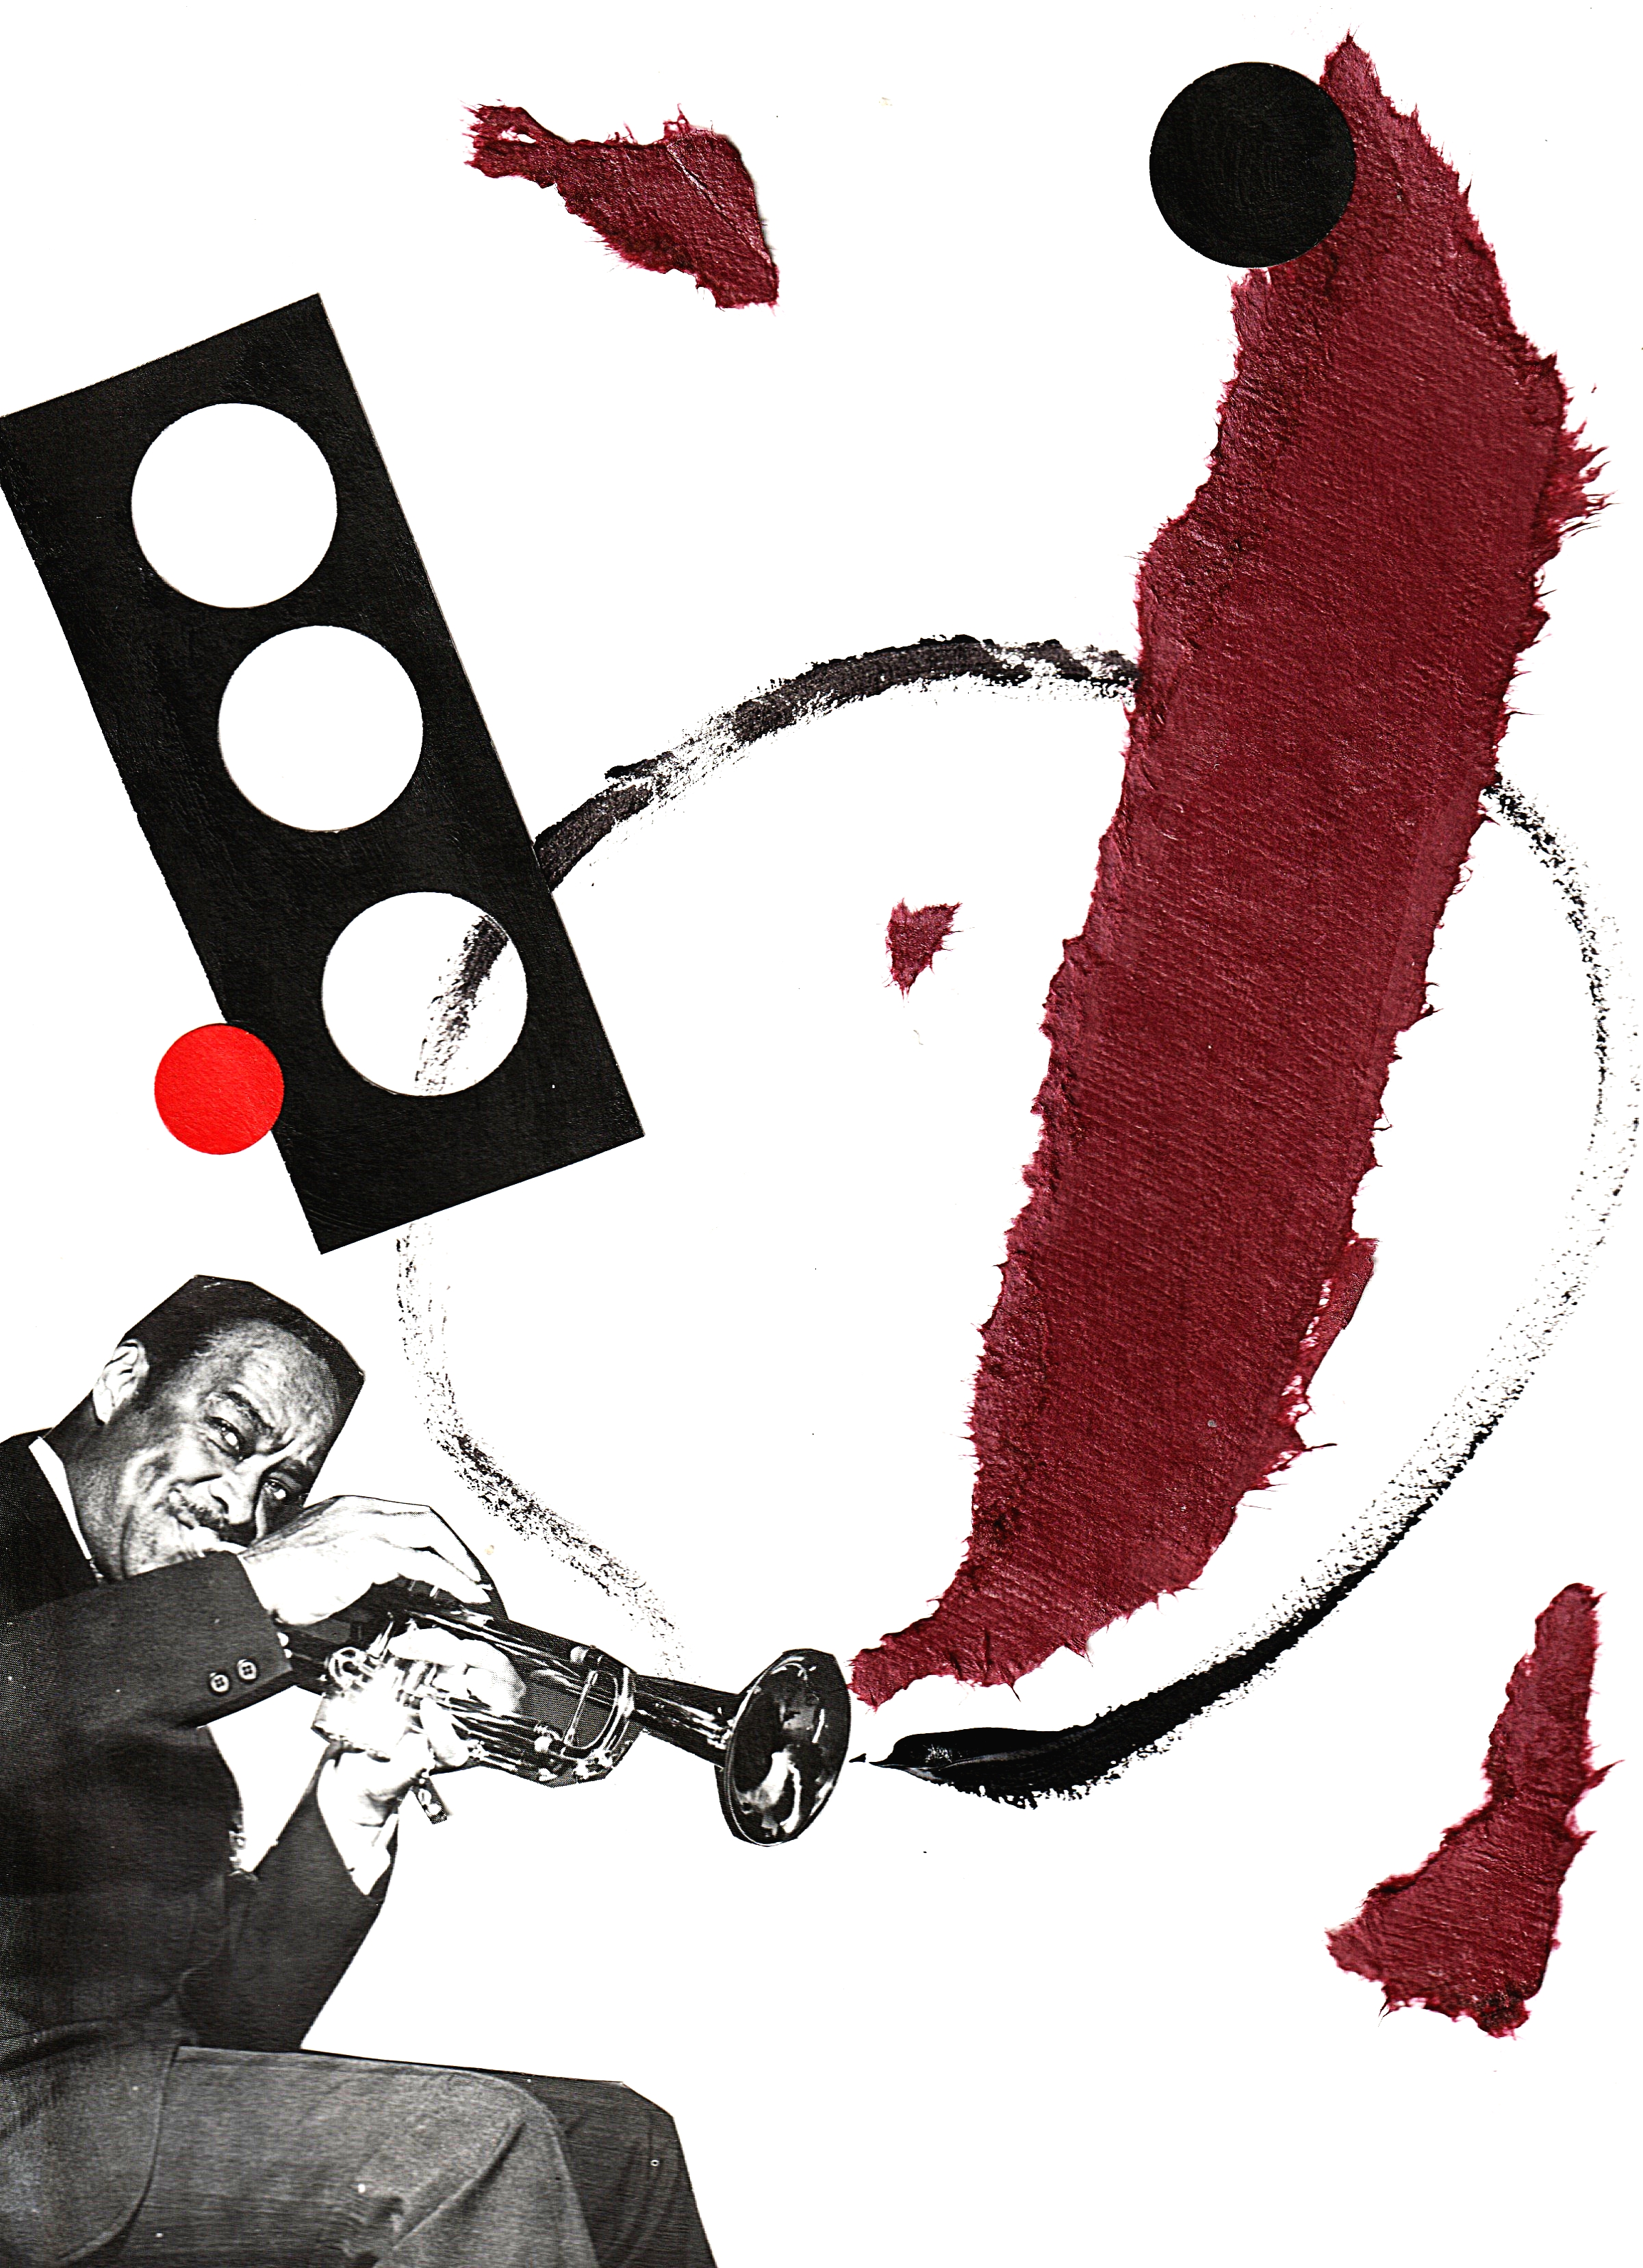 BUCK CLAYTON with hand made paper tears, cut and paste